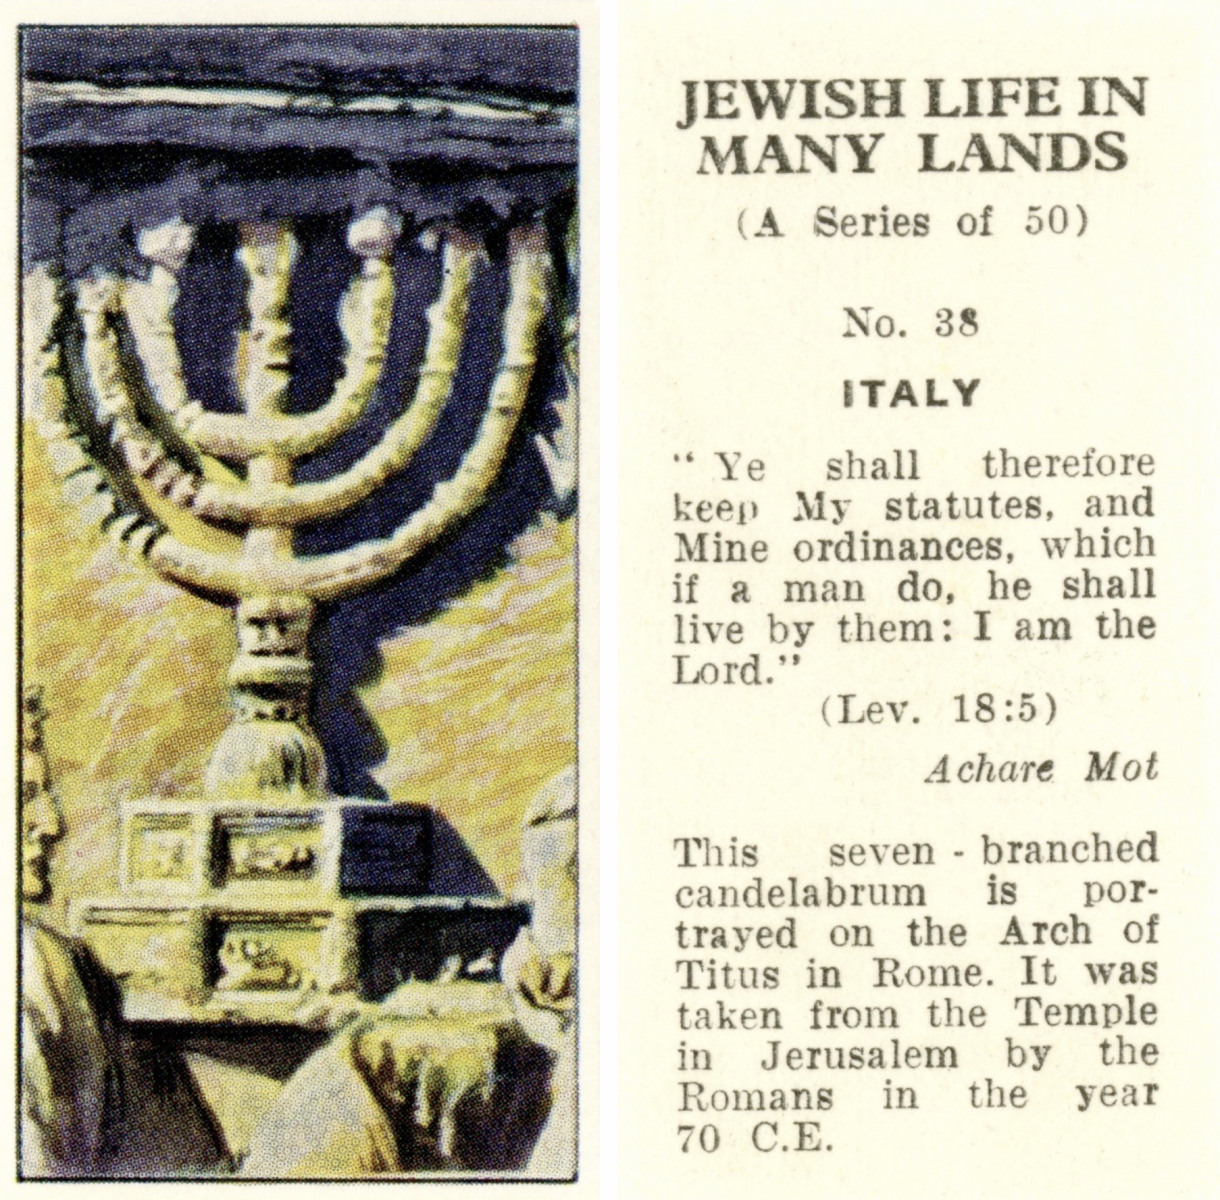 Obverse: large 7-branched menorah. Reverse: Text reveals this is card number 38 out of 50 and that the menorah is in Rome, where it was taken to by the Romans after being stolen from Jerusalem. Lev. 18:5 is quoted.